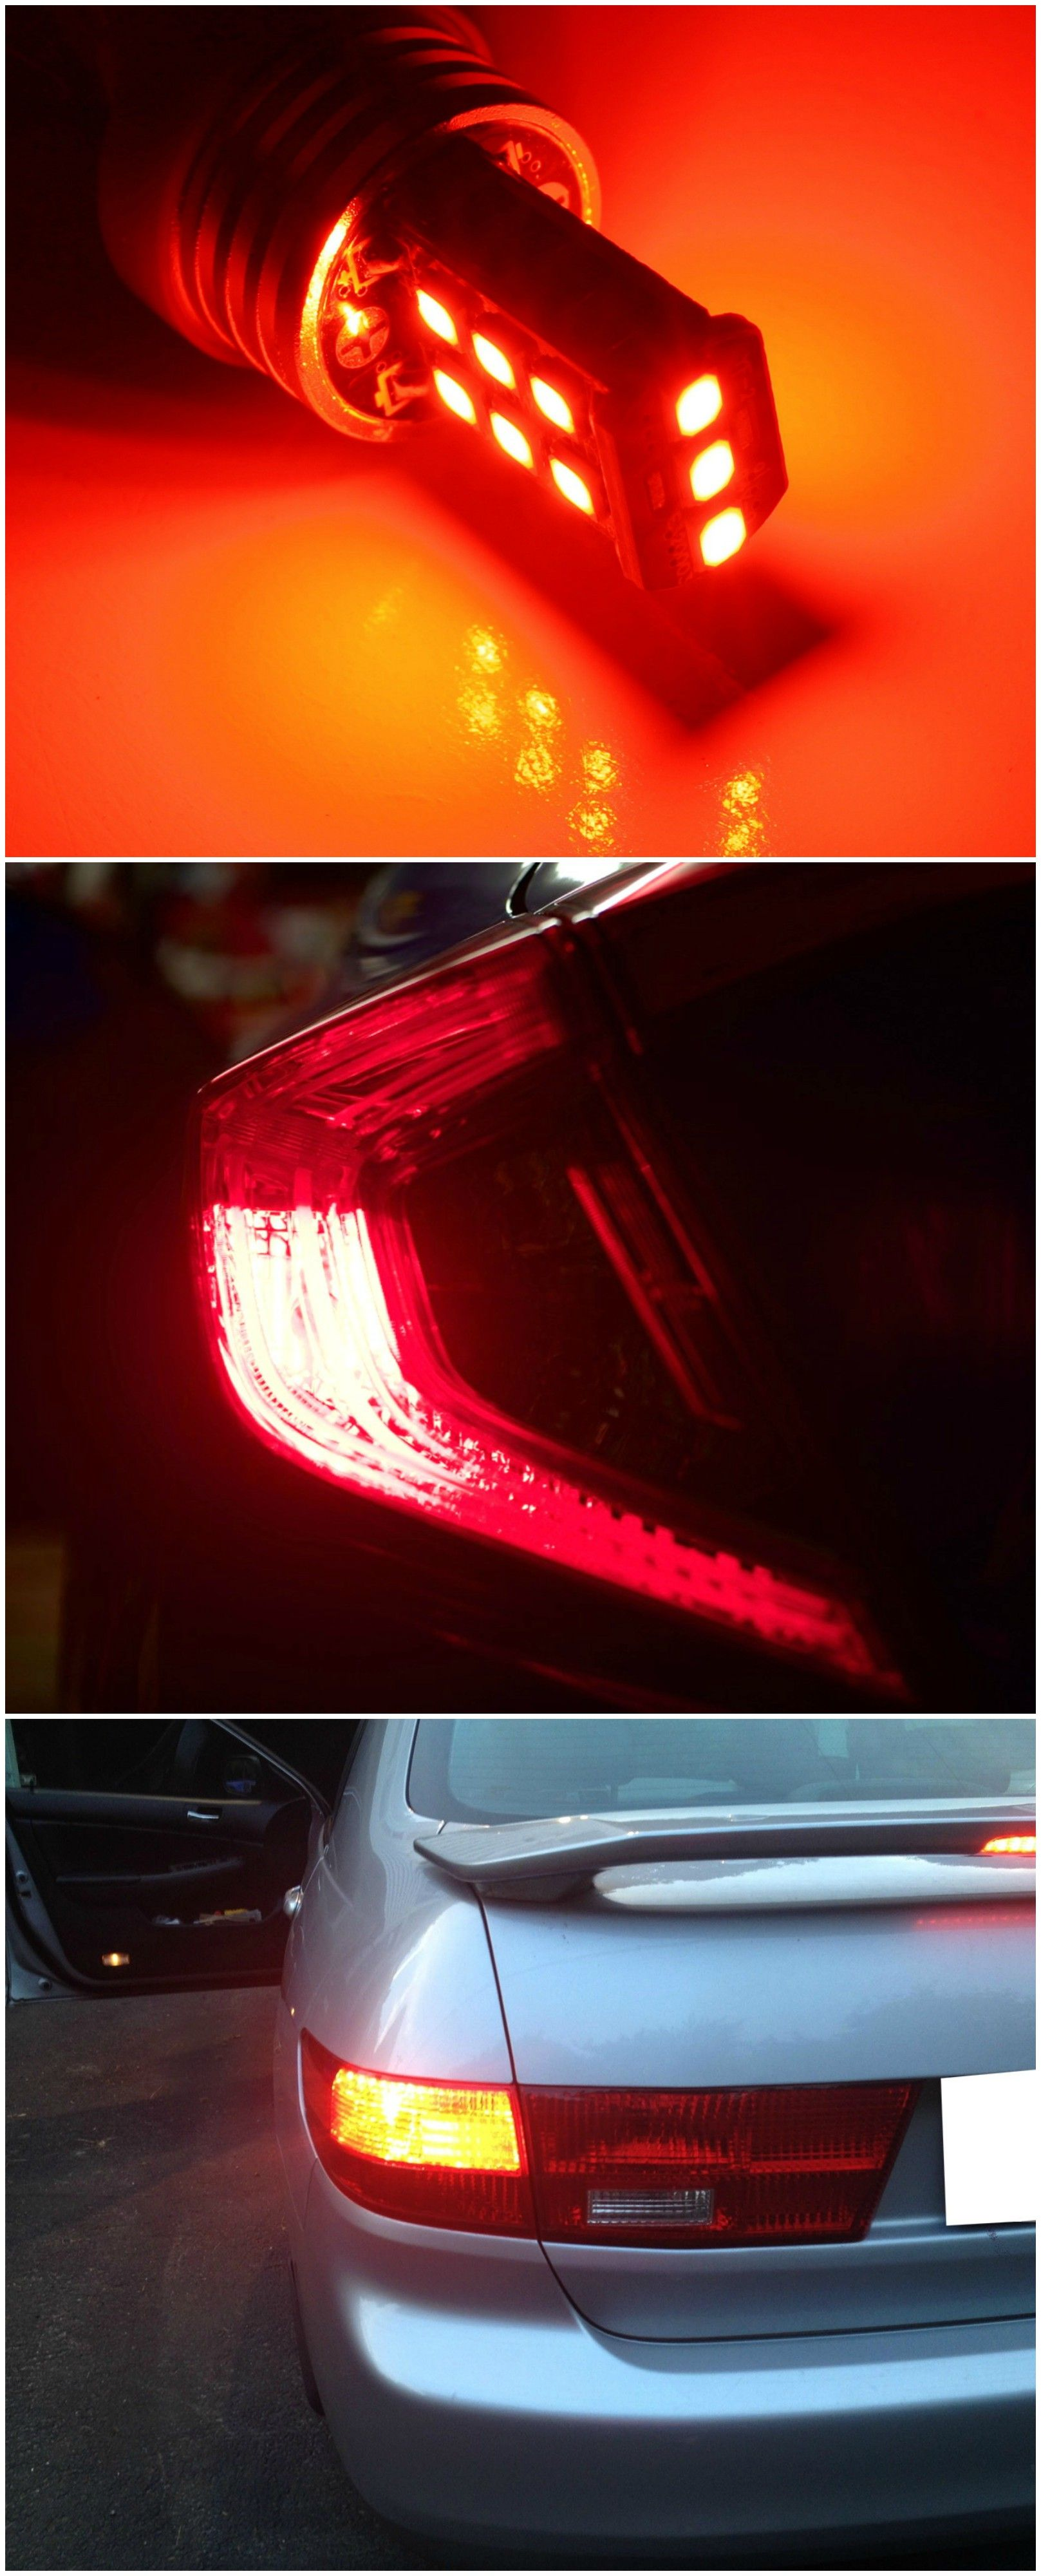 Why Simply Brake When You Can Strobe As Well With The 15 Smd 7443 T20 Led Brake Tail Replacement Bulbs You Can Add A Cool Led Replacement Bulbs Bulb Strobing